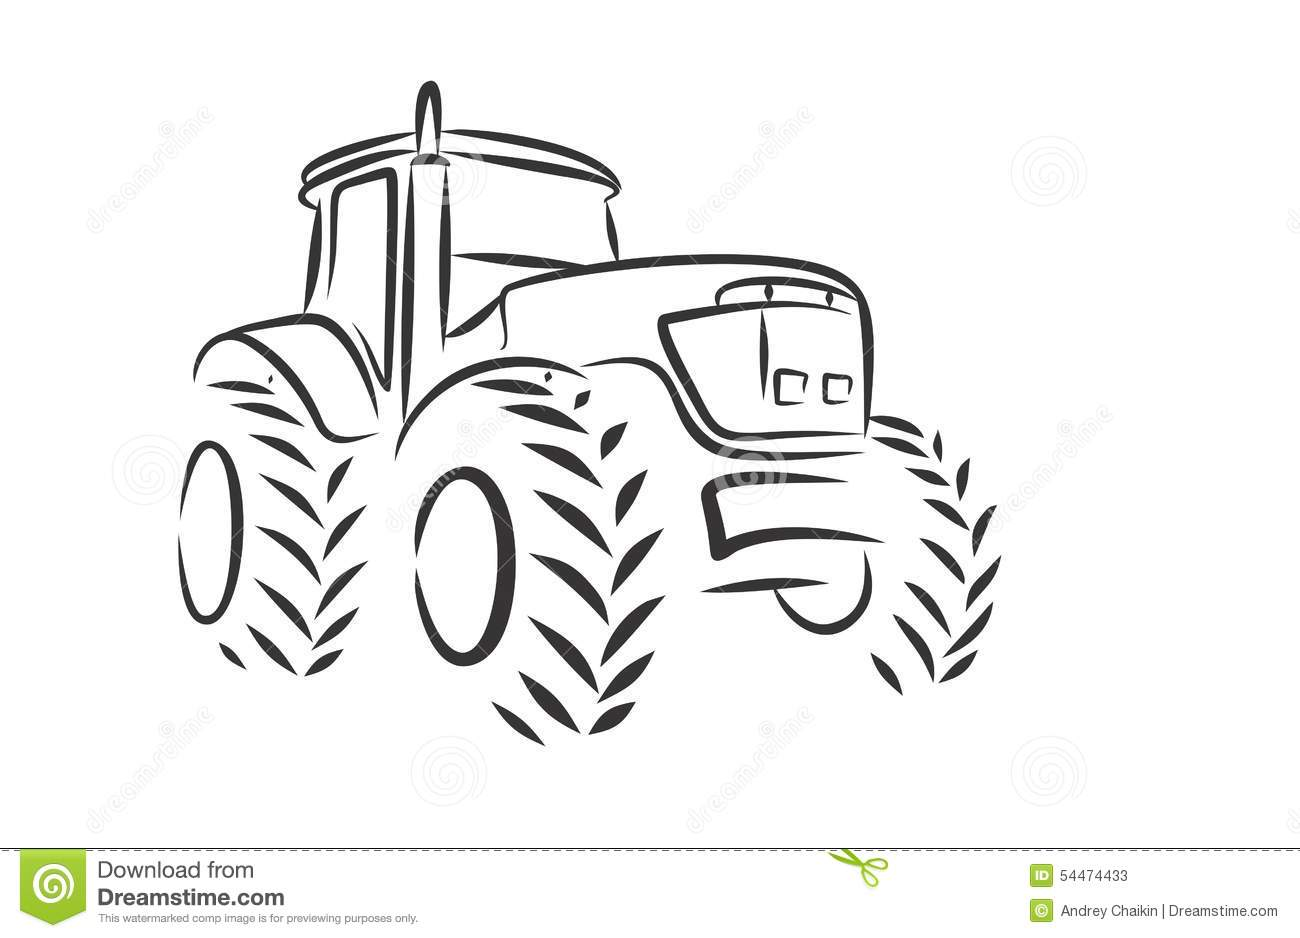 Stock Photography Agricultural Tractor Illustration Art Drawing I Traditional Artist Handmade Paper I Use Pencil Image39721762 in addition Big Ag Forces Firing Of Long Time Farm News Cartoonist as well Stock Vector Wheat Ear Symbols For Logo Design Agriculture Grain Organic Plant Bread Food Natural Harvest Vector Illustration in addition Optikit Pole Barn Trusses likewise Windmill Village Houses And Farmland 48962308. on agricultural design drawings